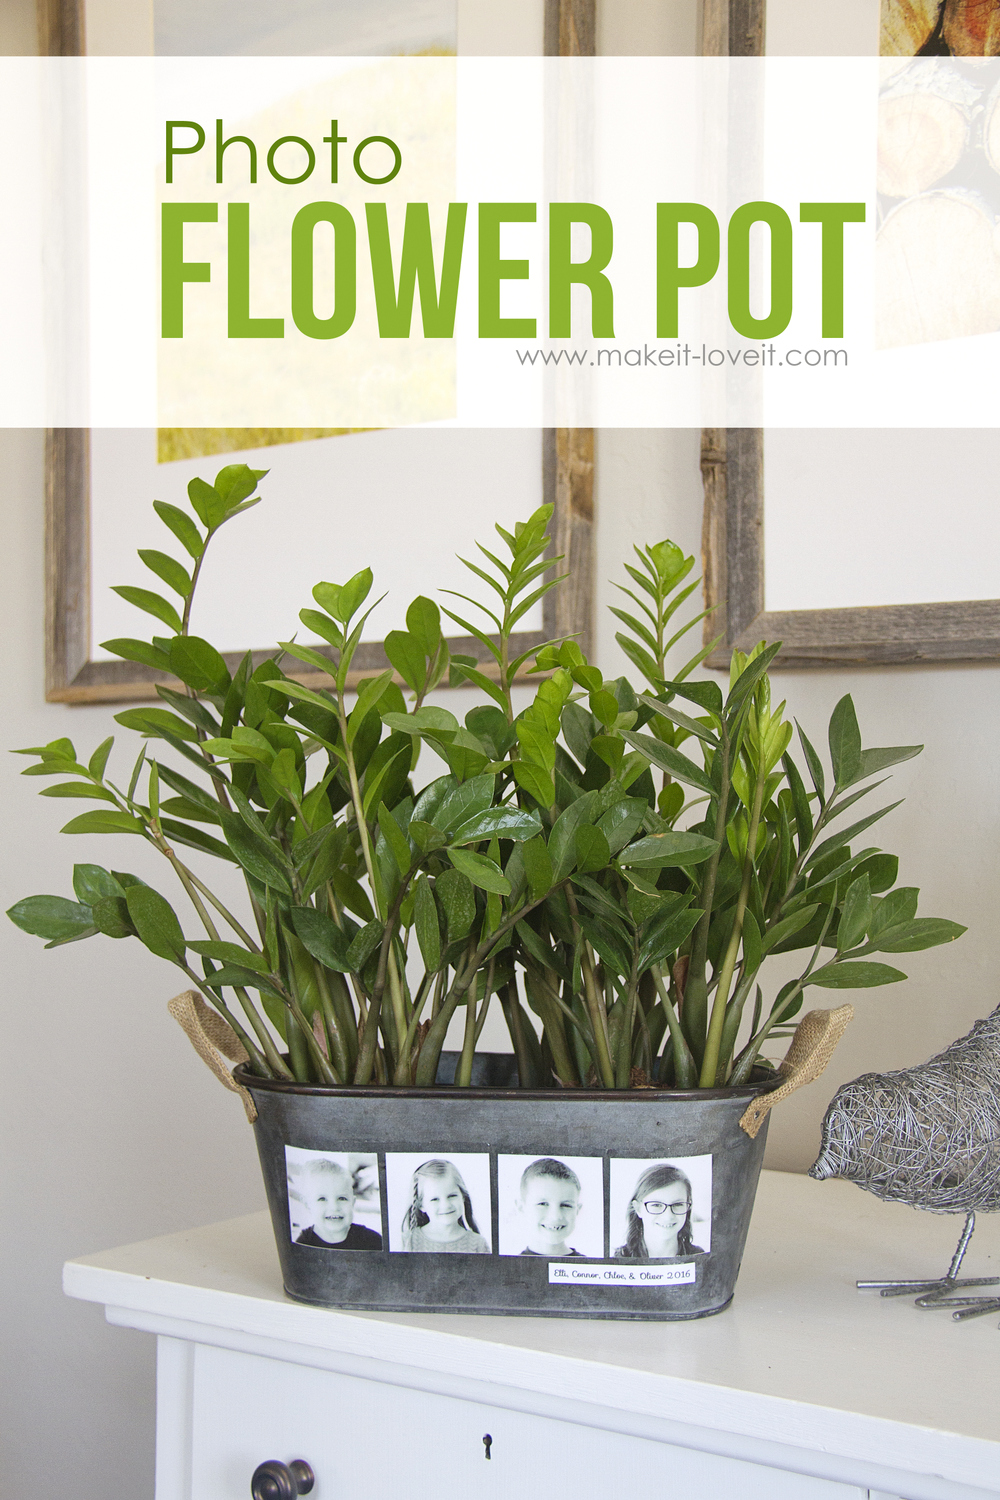 Diy photo flower pot (…fun for mother's day!)